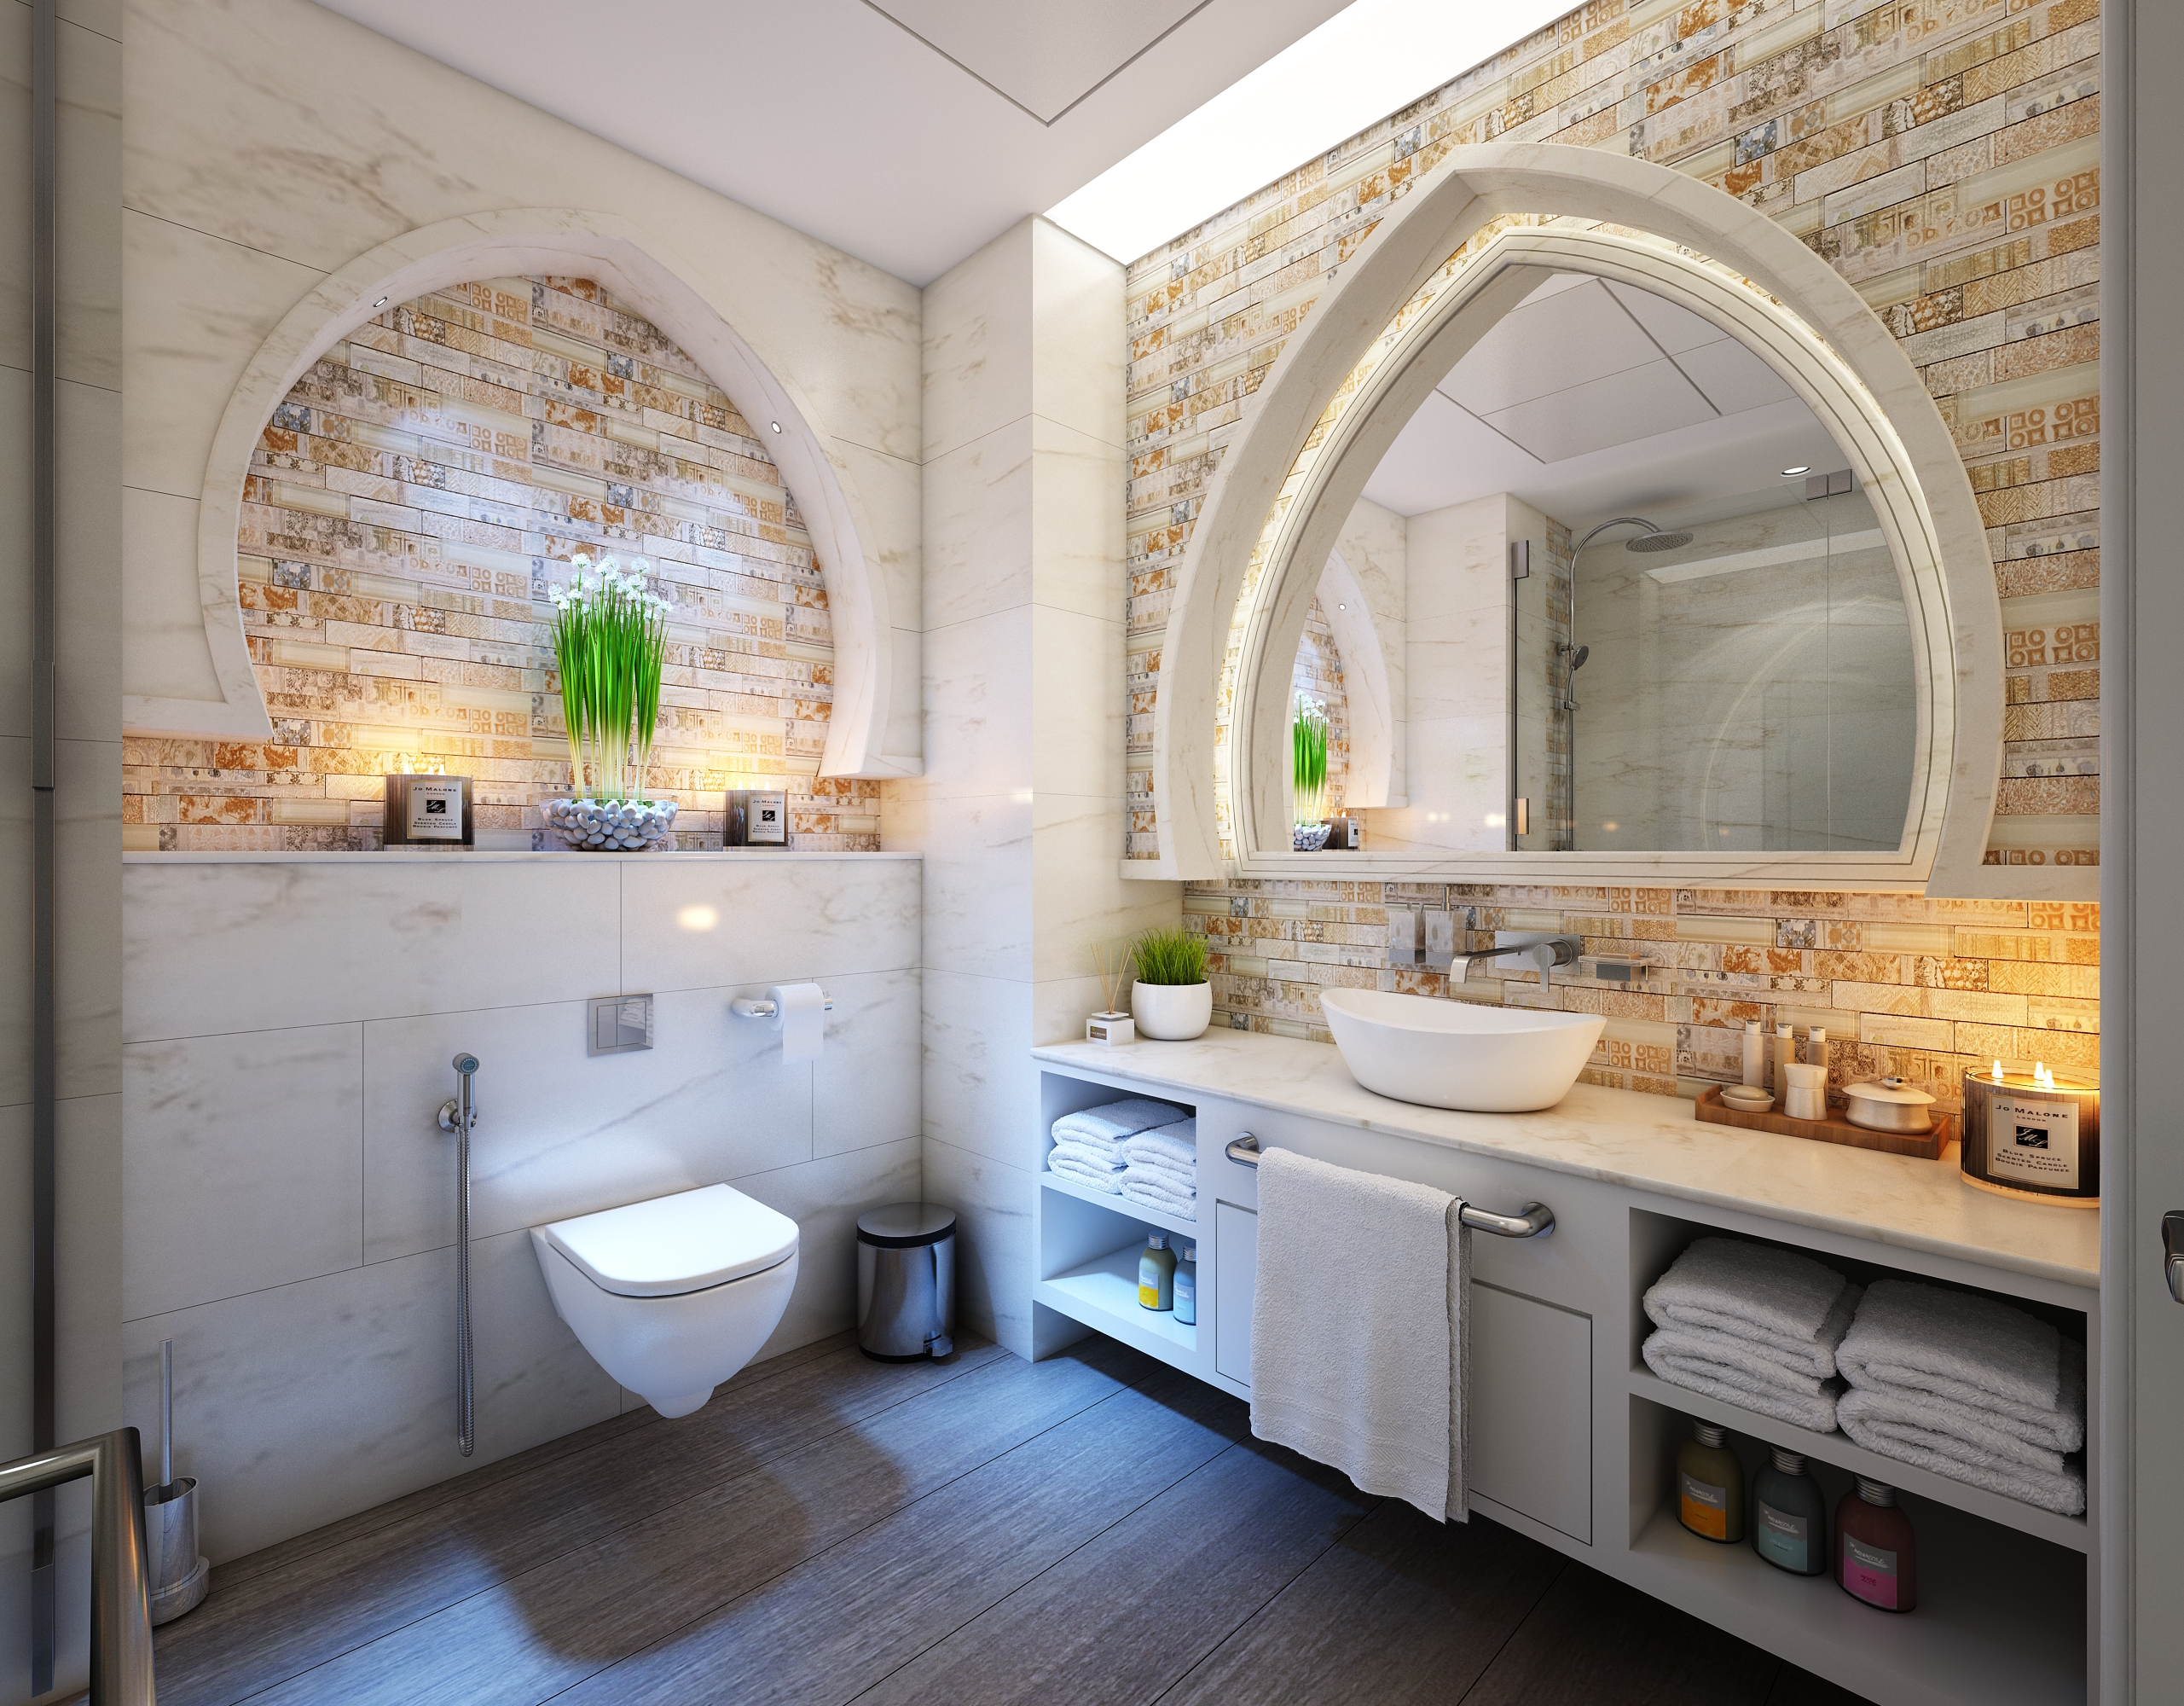 Tip How To Update Your Bathroom On A Budget - How to update your bathroom on a budget